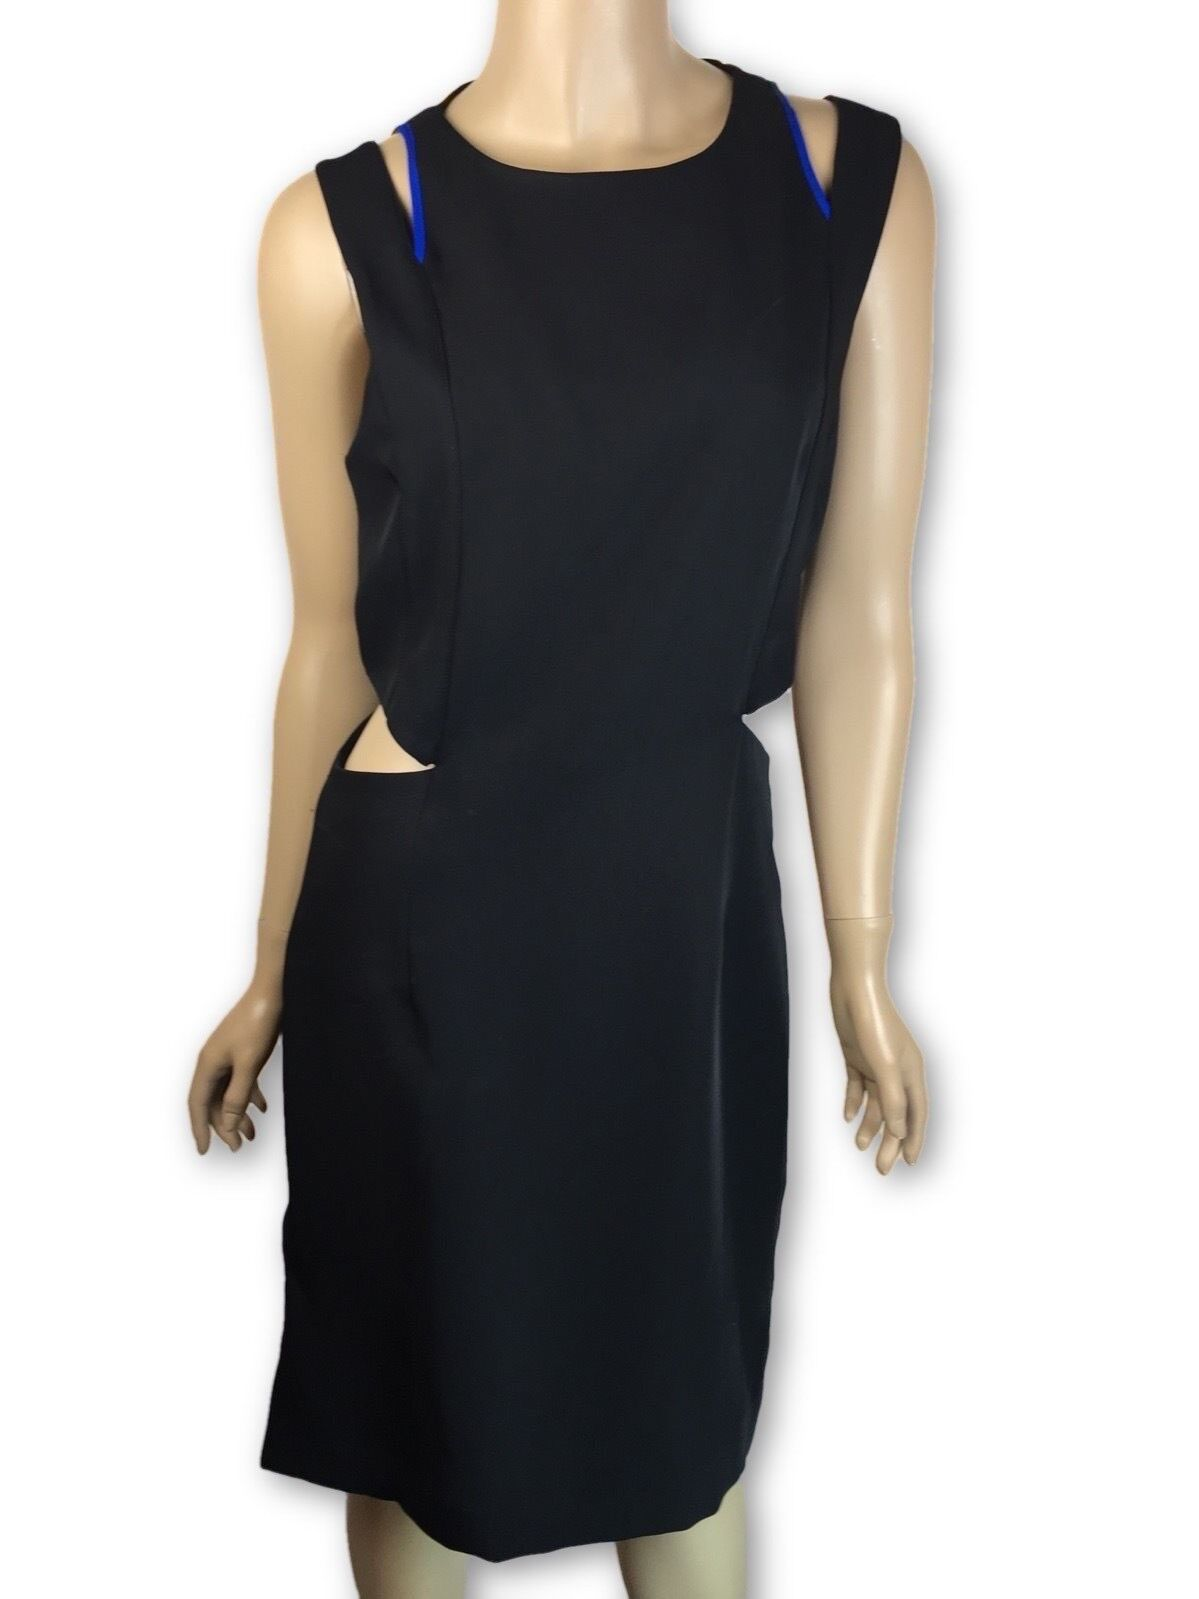 Public School New Größe 4 schwarz Silky Twill Cutout Dress Blau Piping MSRP